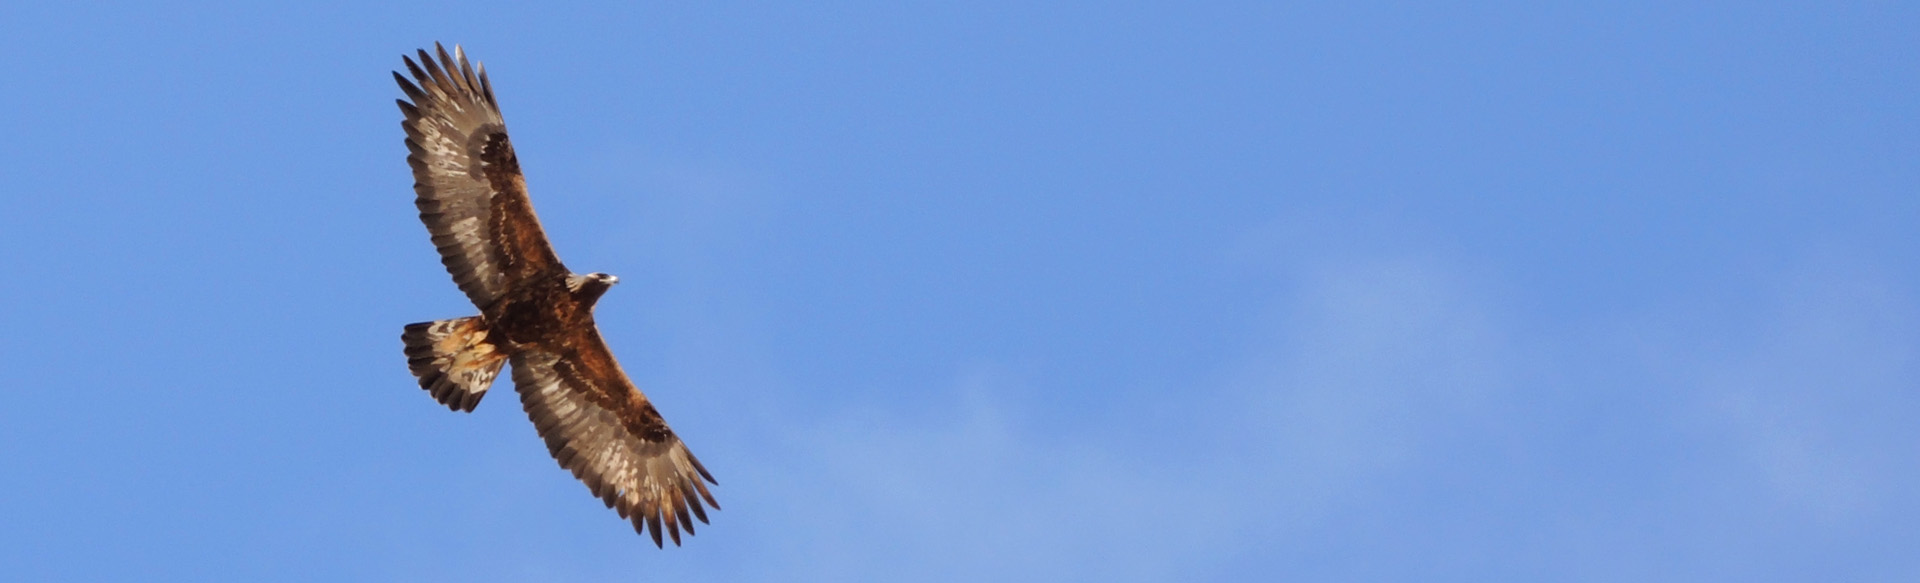 Golden Eagle In The Ecrins Massif French Alps